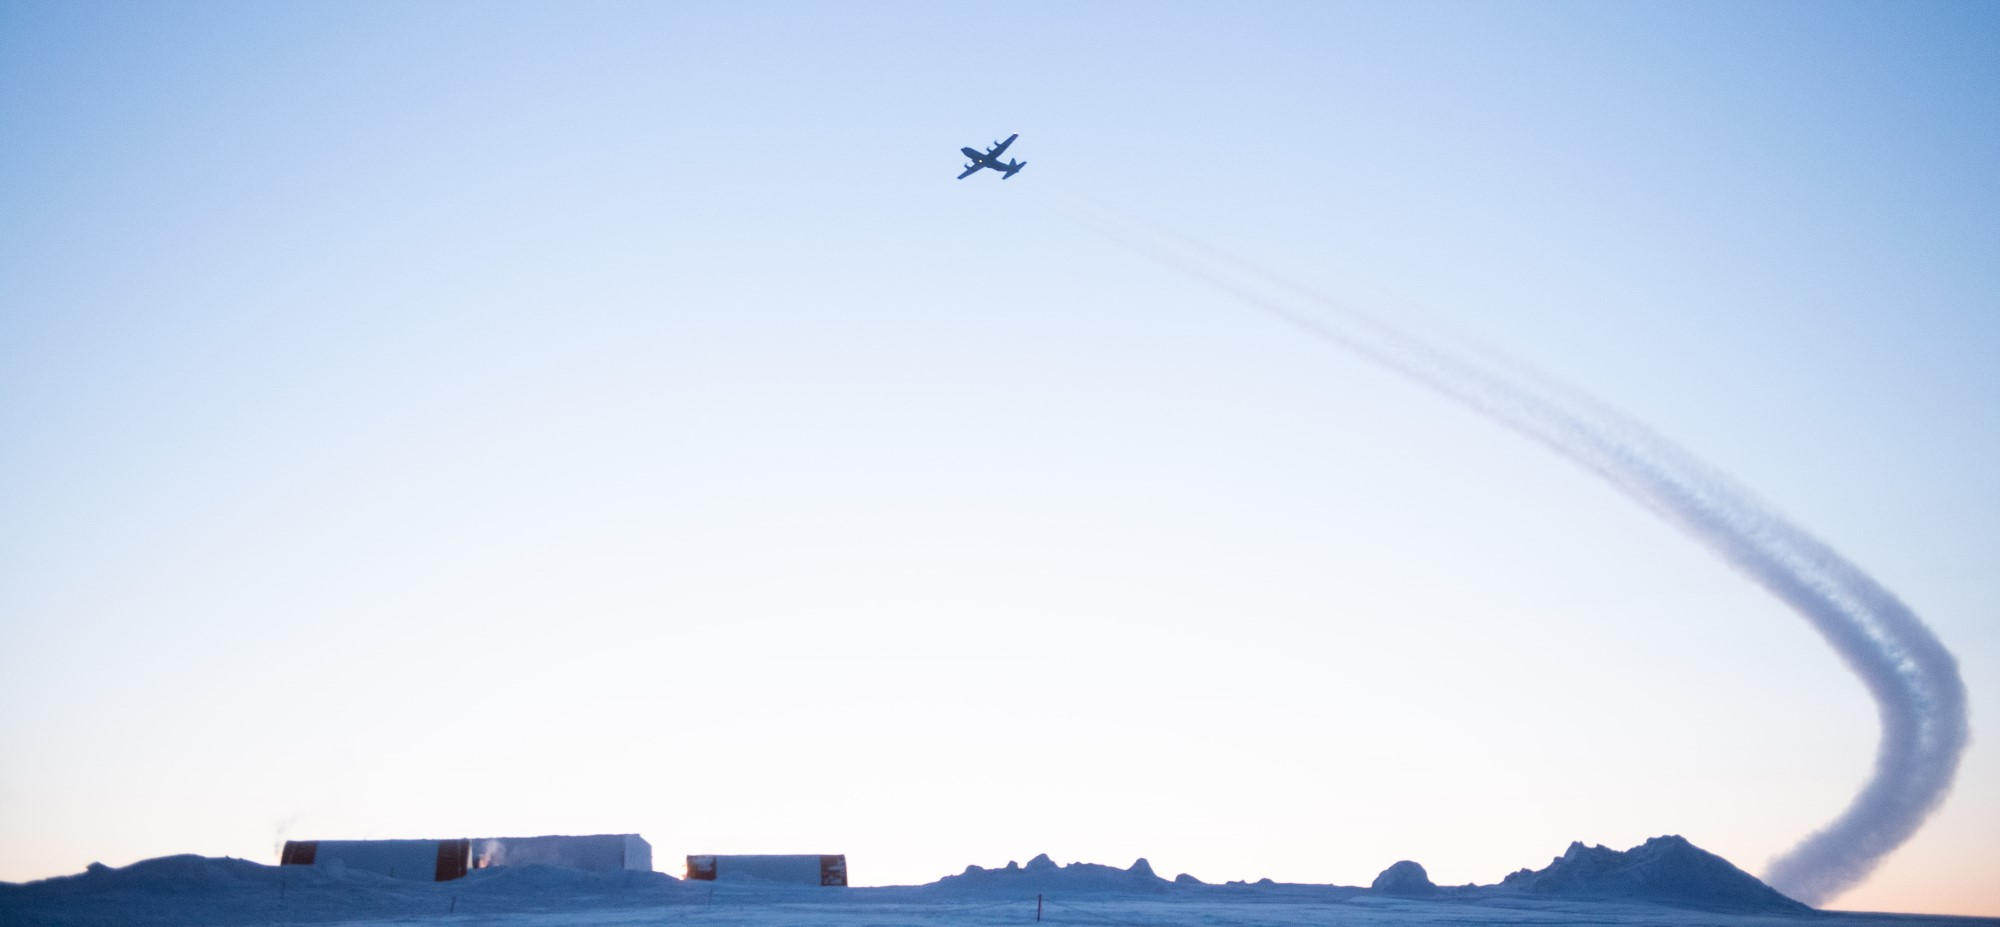 In a photo that shows an Arctic landscape, a big propeller aircraft flies in a blue sky leaving a vapour trail behind it.